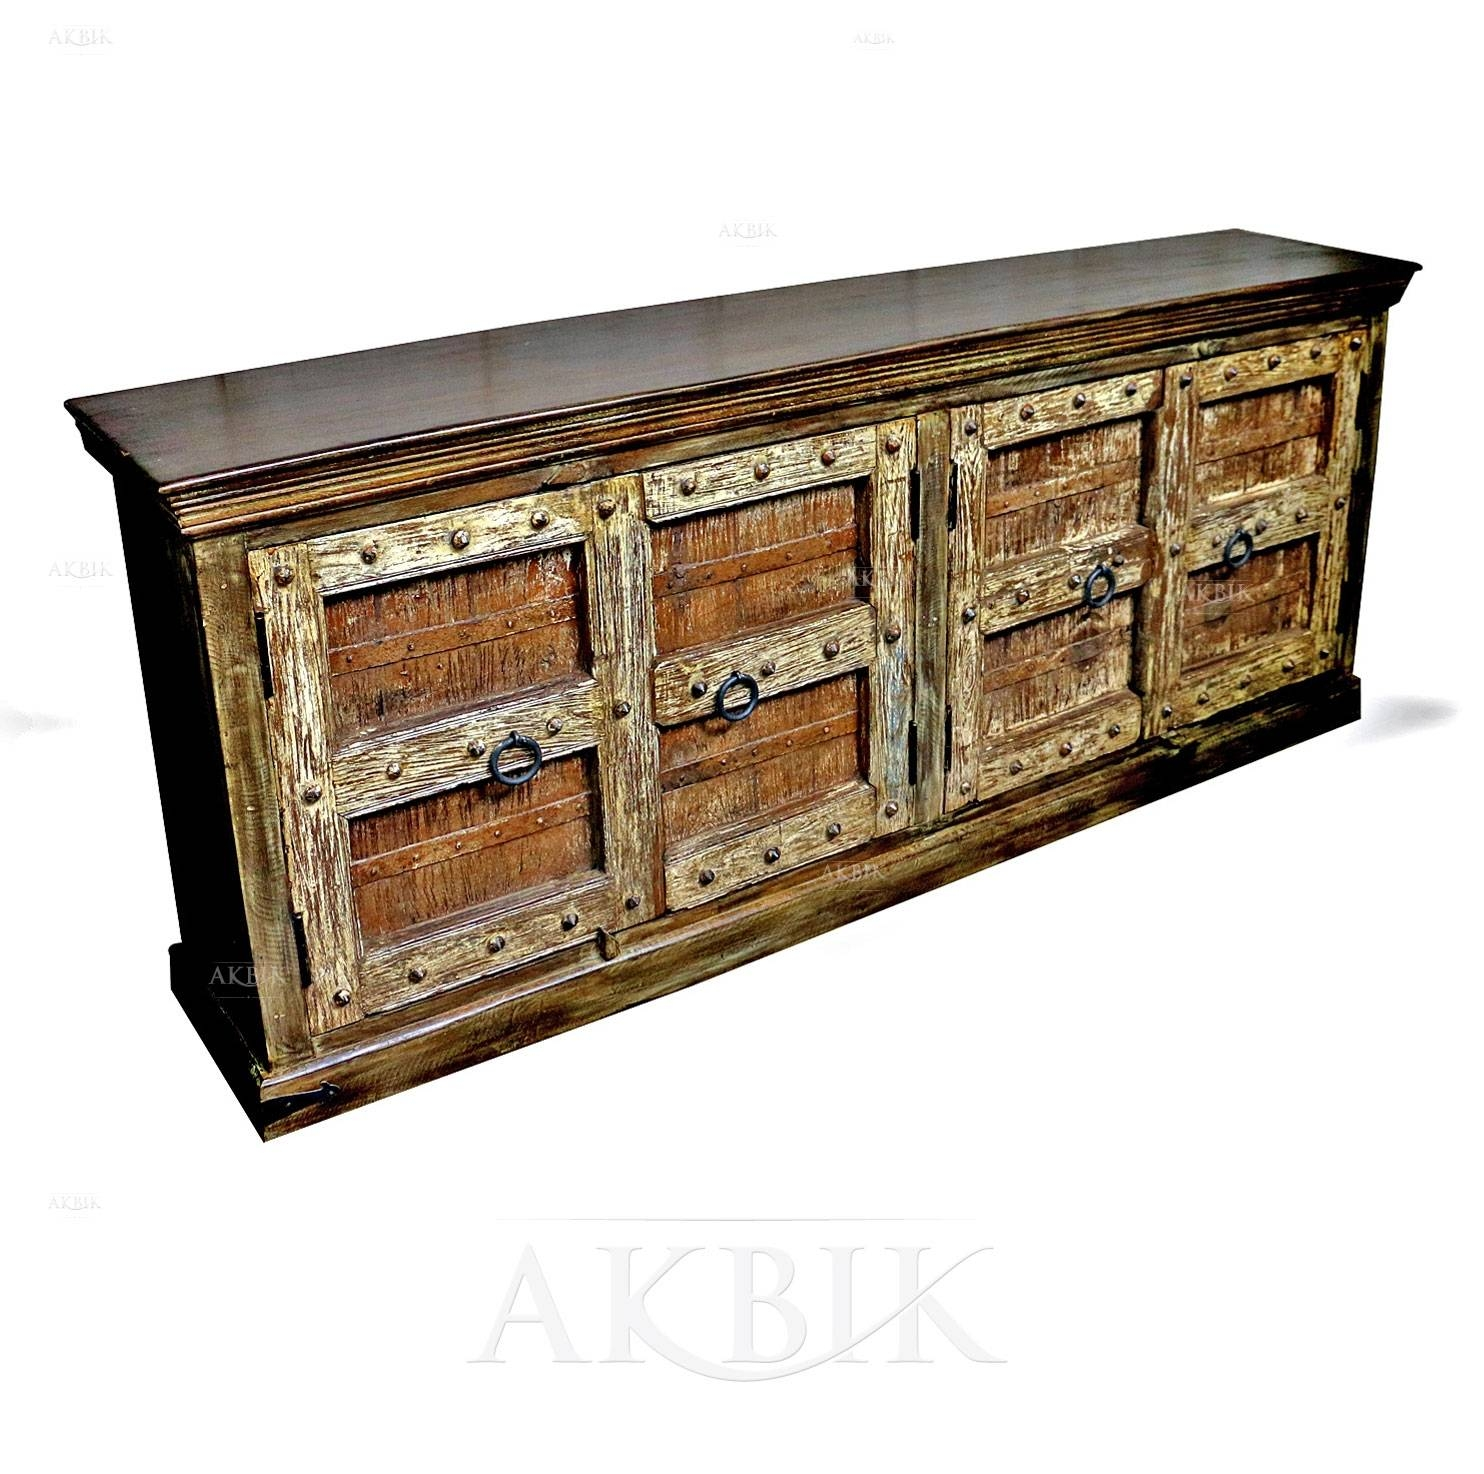 Mediterranean, Levantine & Syrian Furniture Inlaid With Mother Of with regard to Indian Sideboard Furniture (Image 12 of 15)